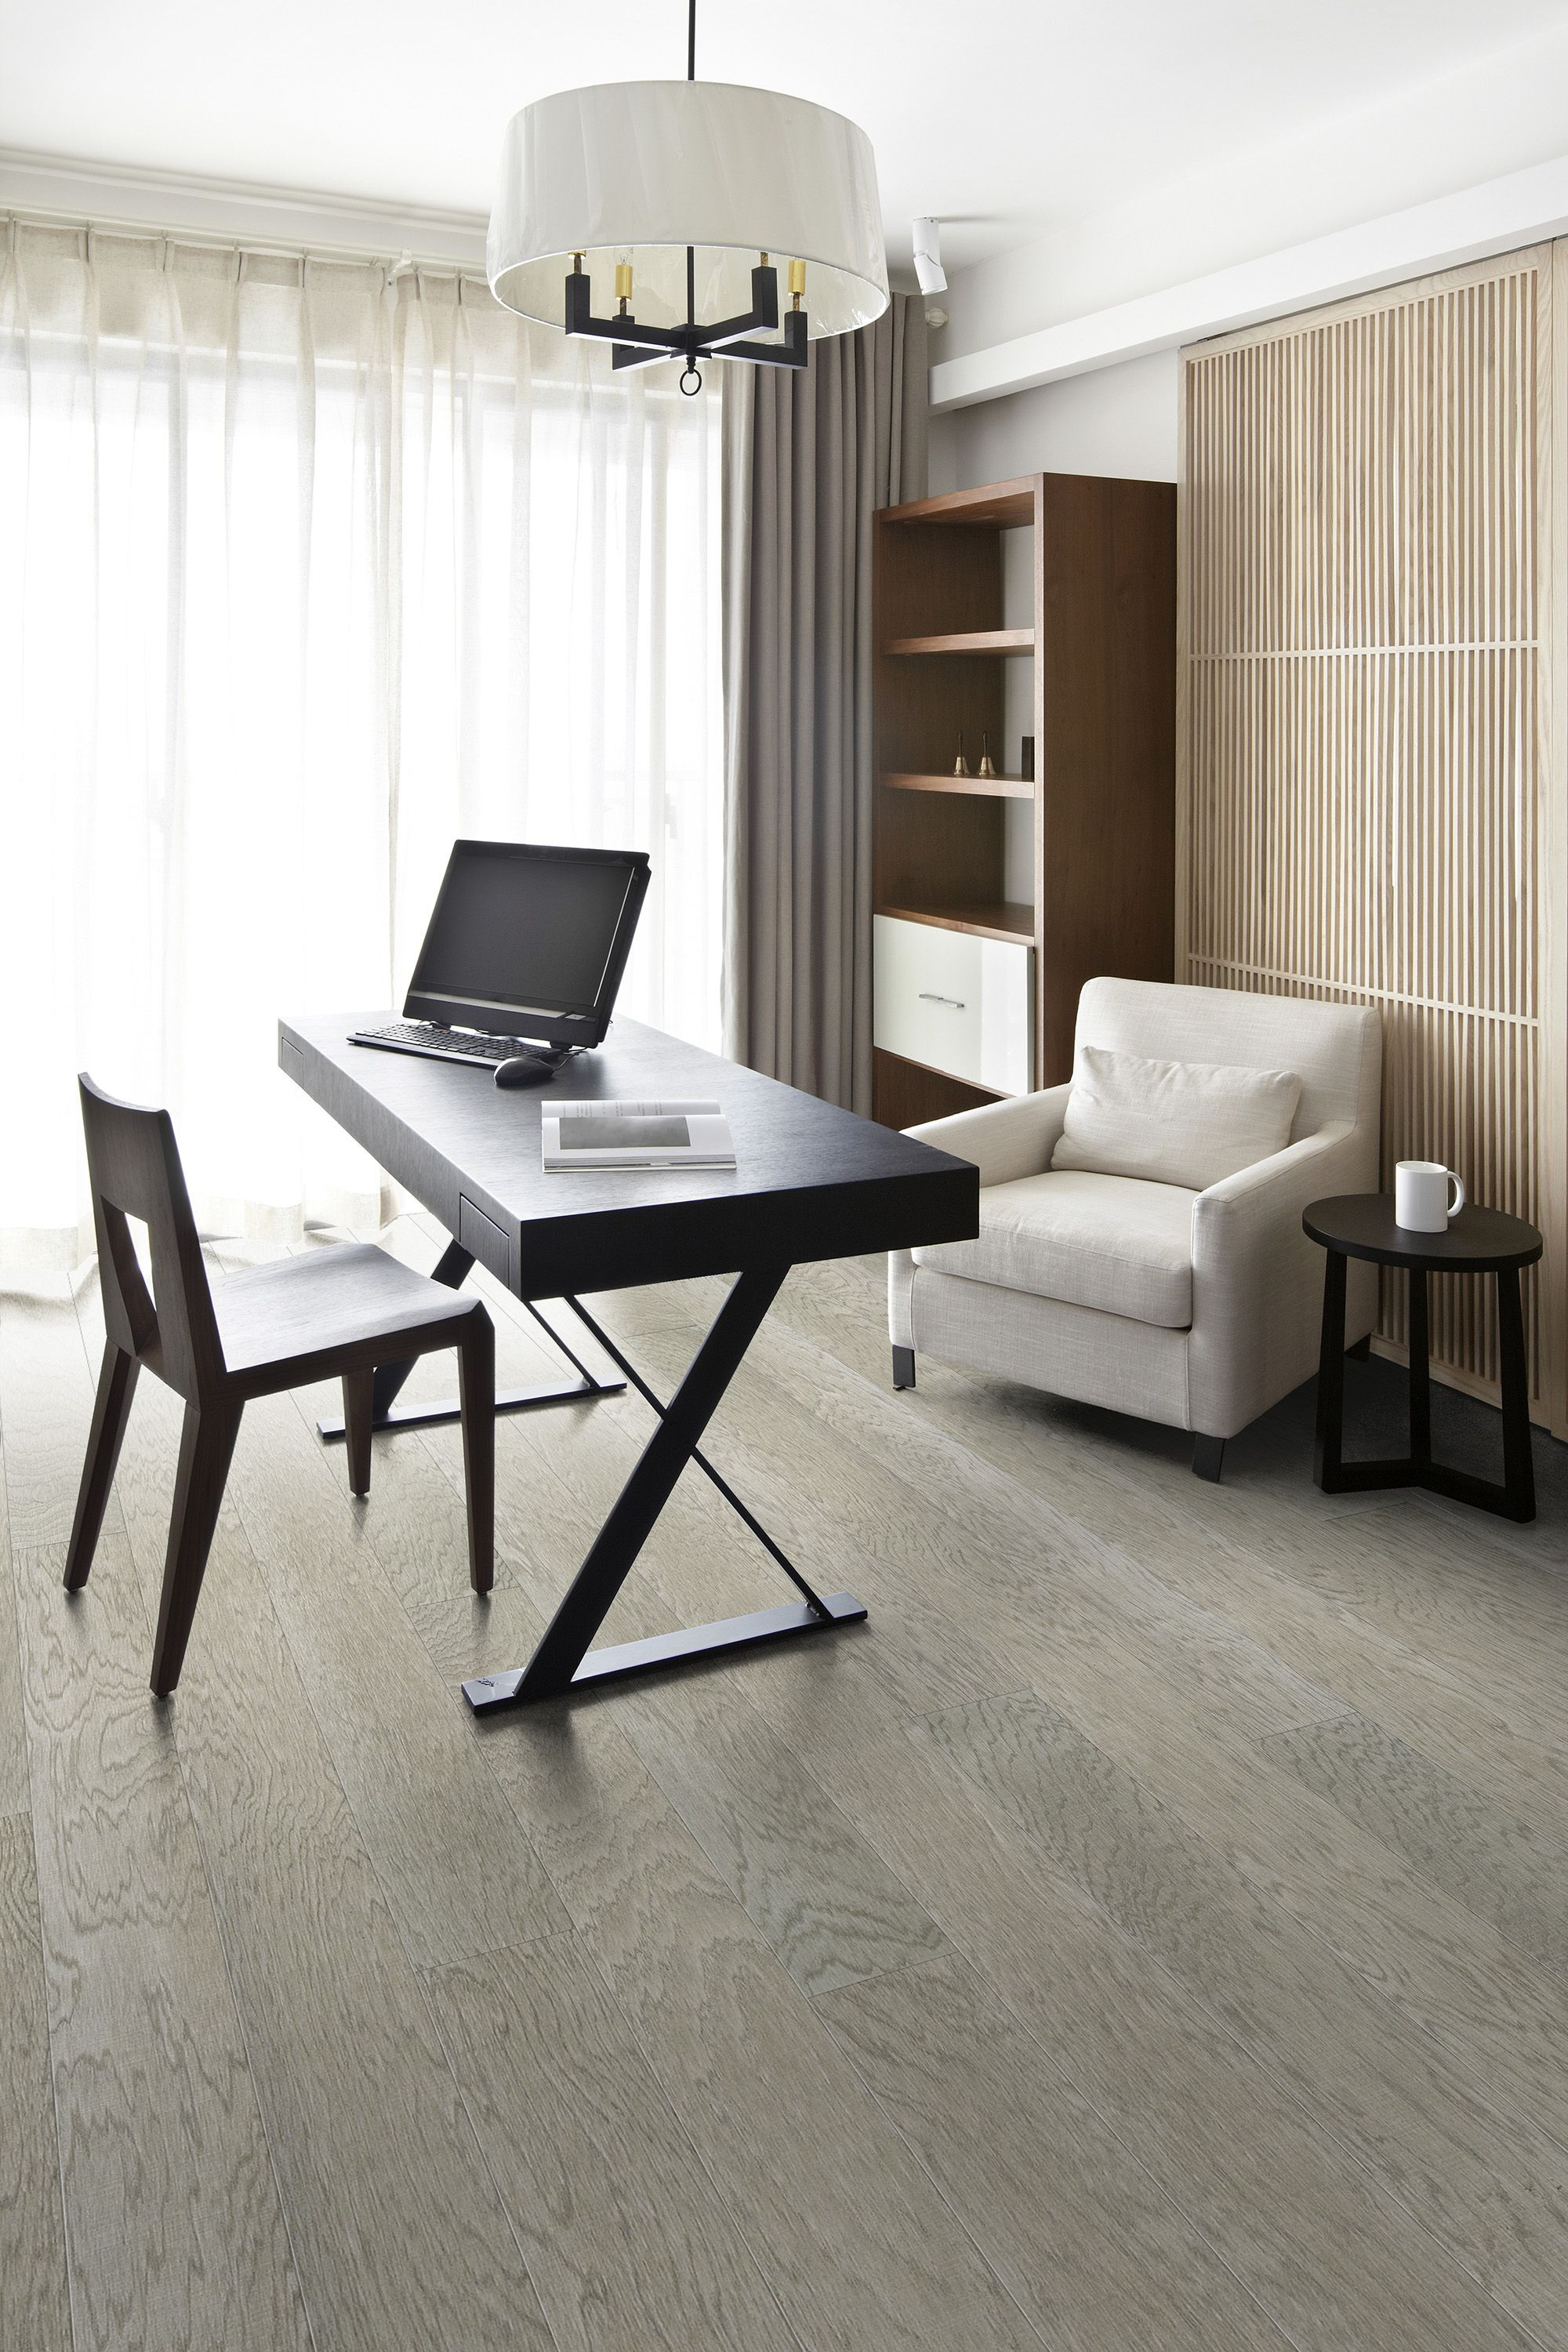 high end hardwood flooring company of soft grey hardwood flooring for a sophisticated office space inside soft grey hardwood flooring for a sophisticated office space